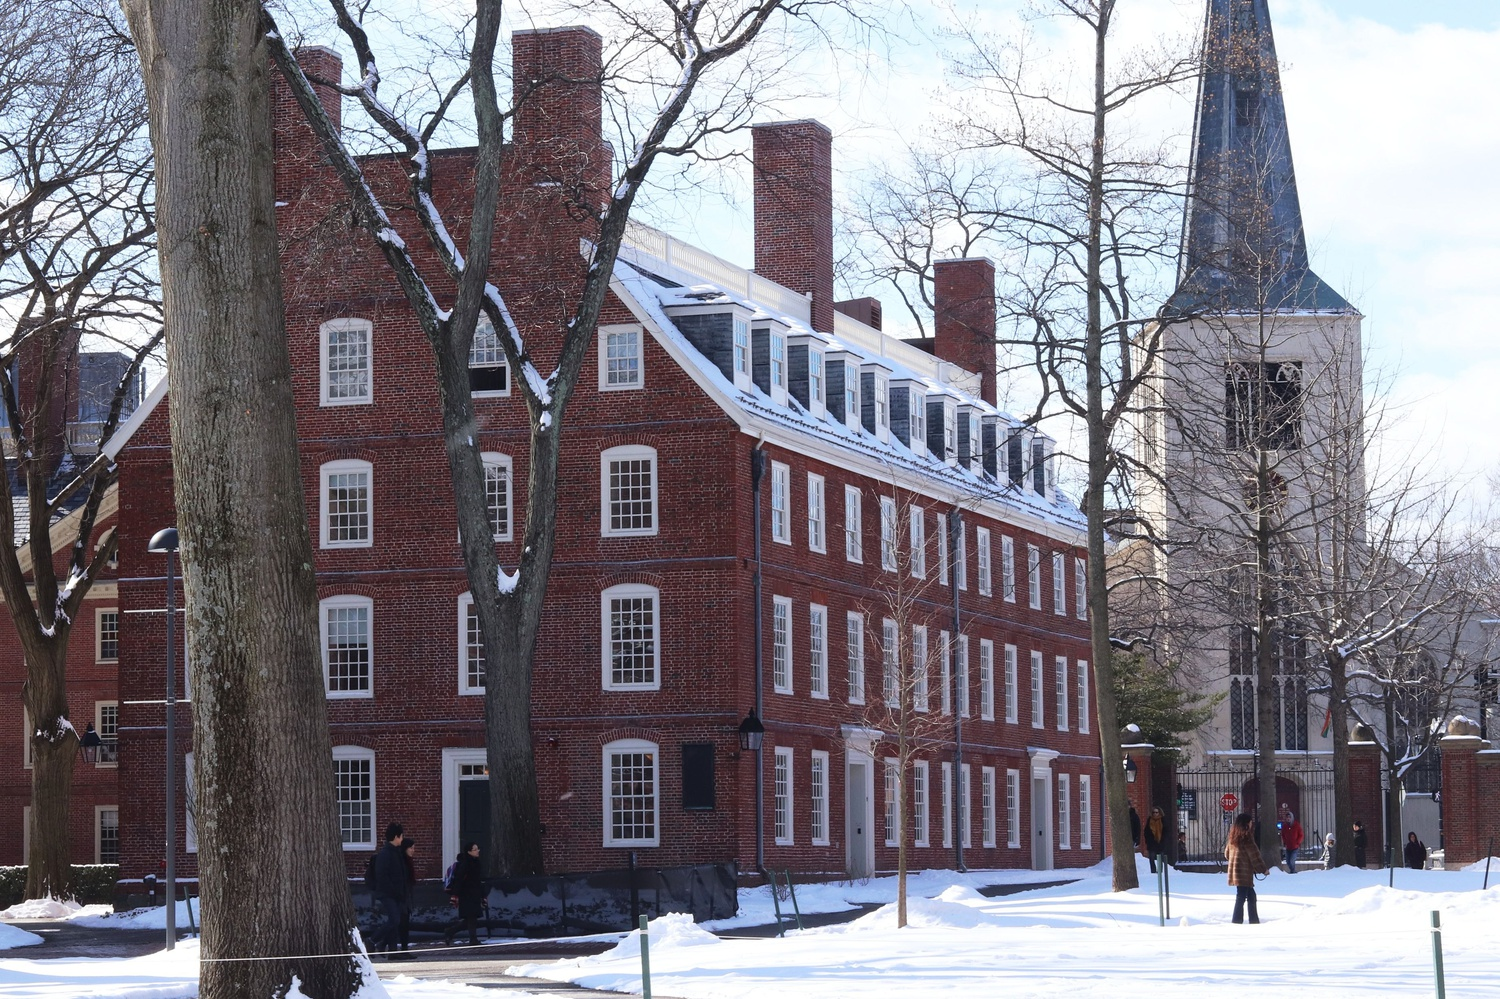 Massachusetts Hall is located in Harvard Yard.